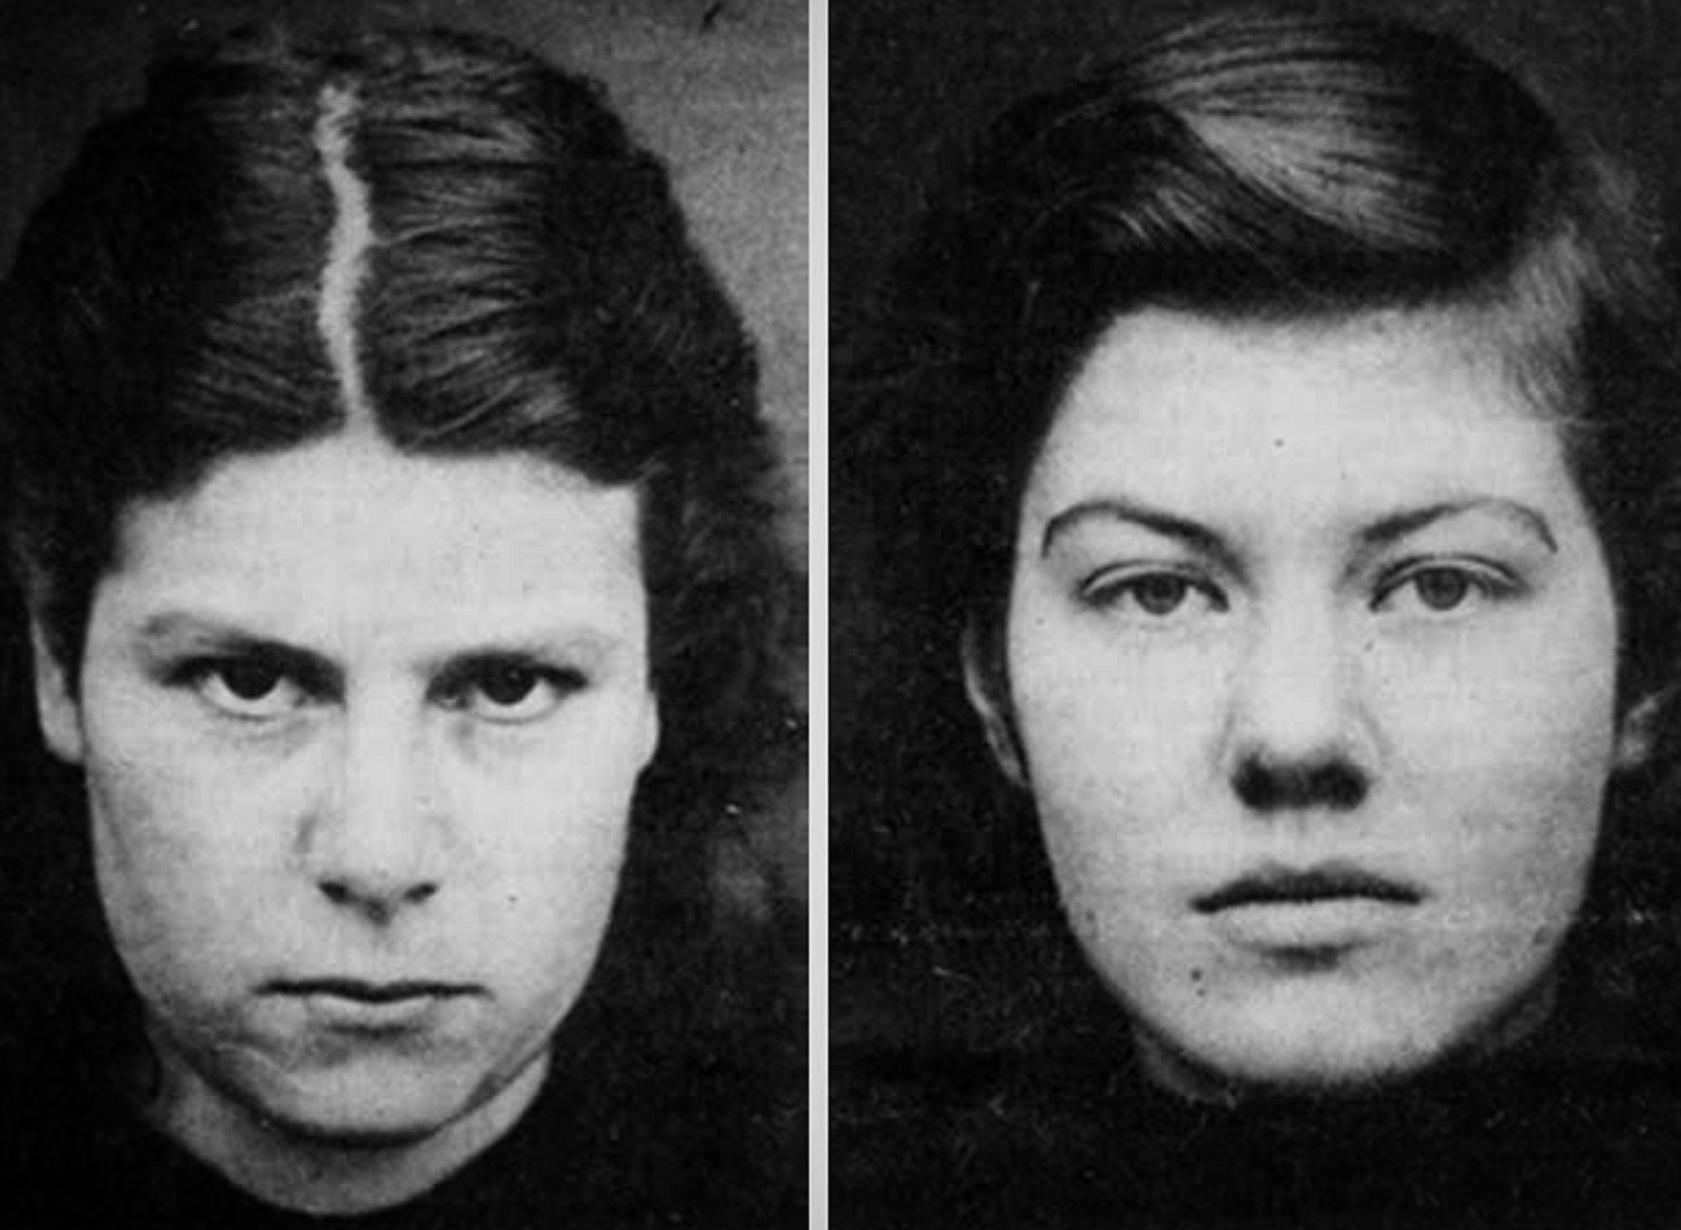 Pauline (left) was 16 at the time of her mother's murder, while Juliet was 15.